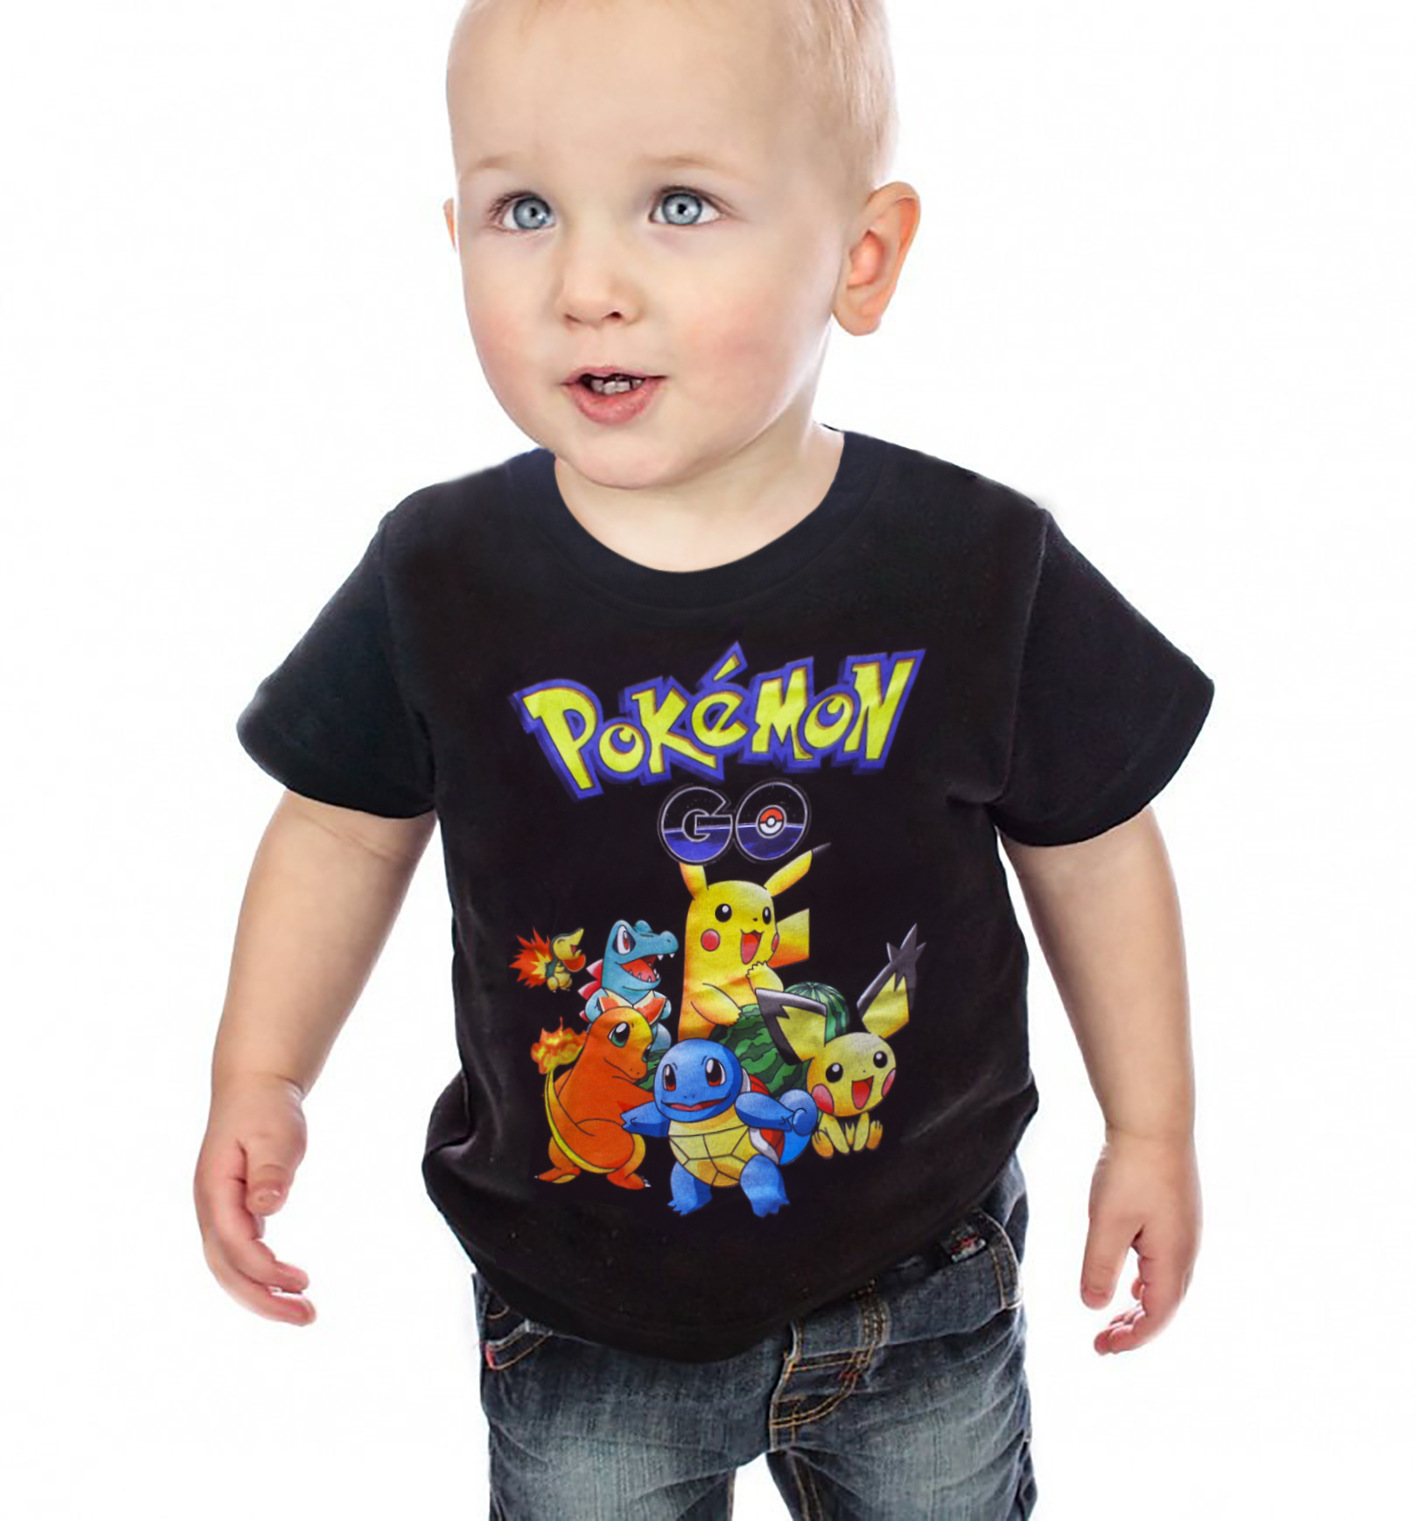 Girls Tops T-Shirts Pikachu 3-10years Pokemon-Go Boys Kids Children Shorts Cotton Summer